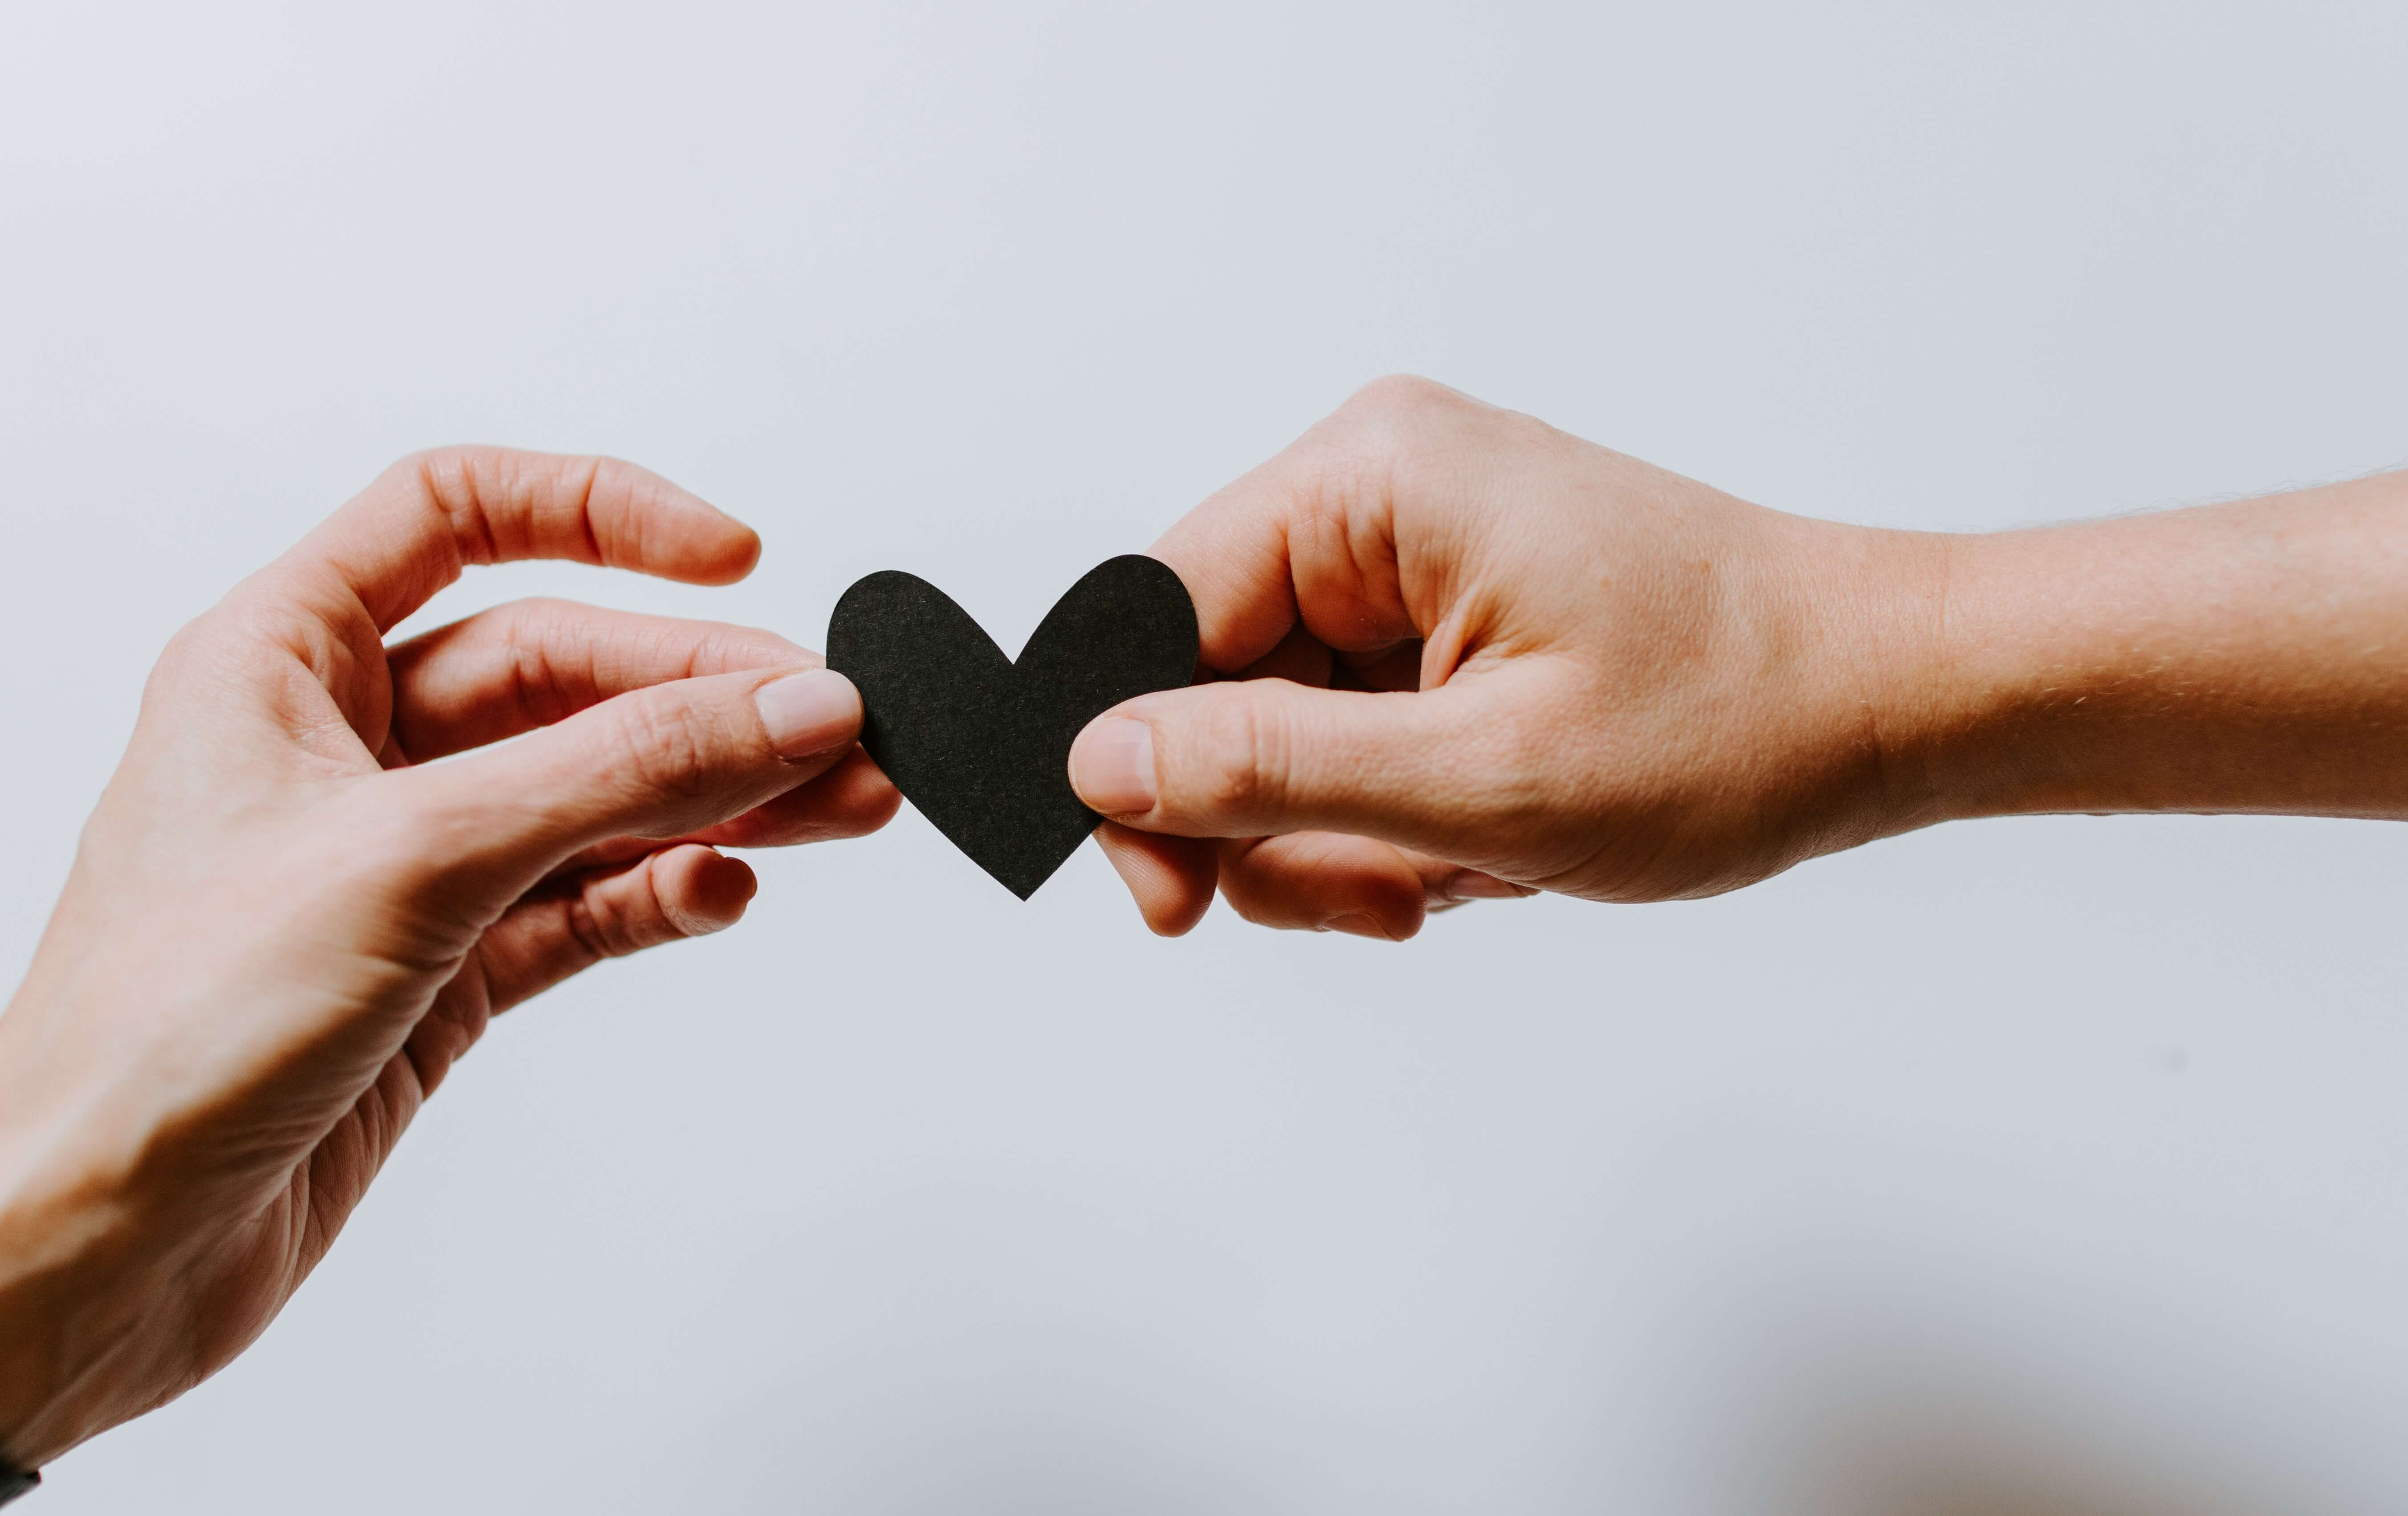 Two different hands hold either side of a black paper heart in front of a blank backdrop. Brave Minds Psychological Services offers couples counseling, marriage counseling, and more! Contact us today for support!